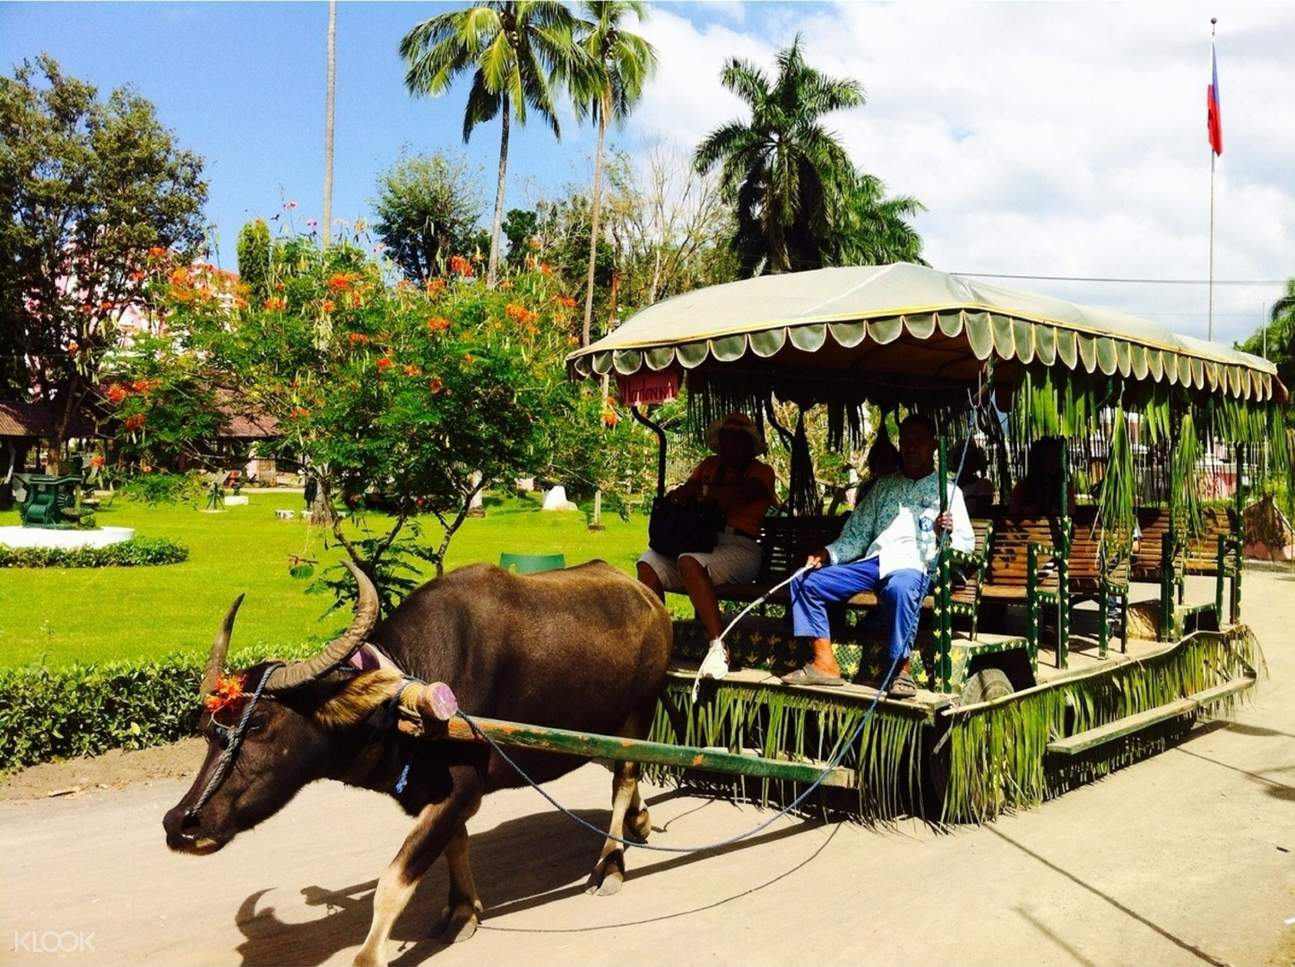 local tourists on a carabao drawn carriage